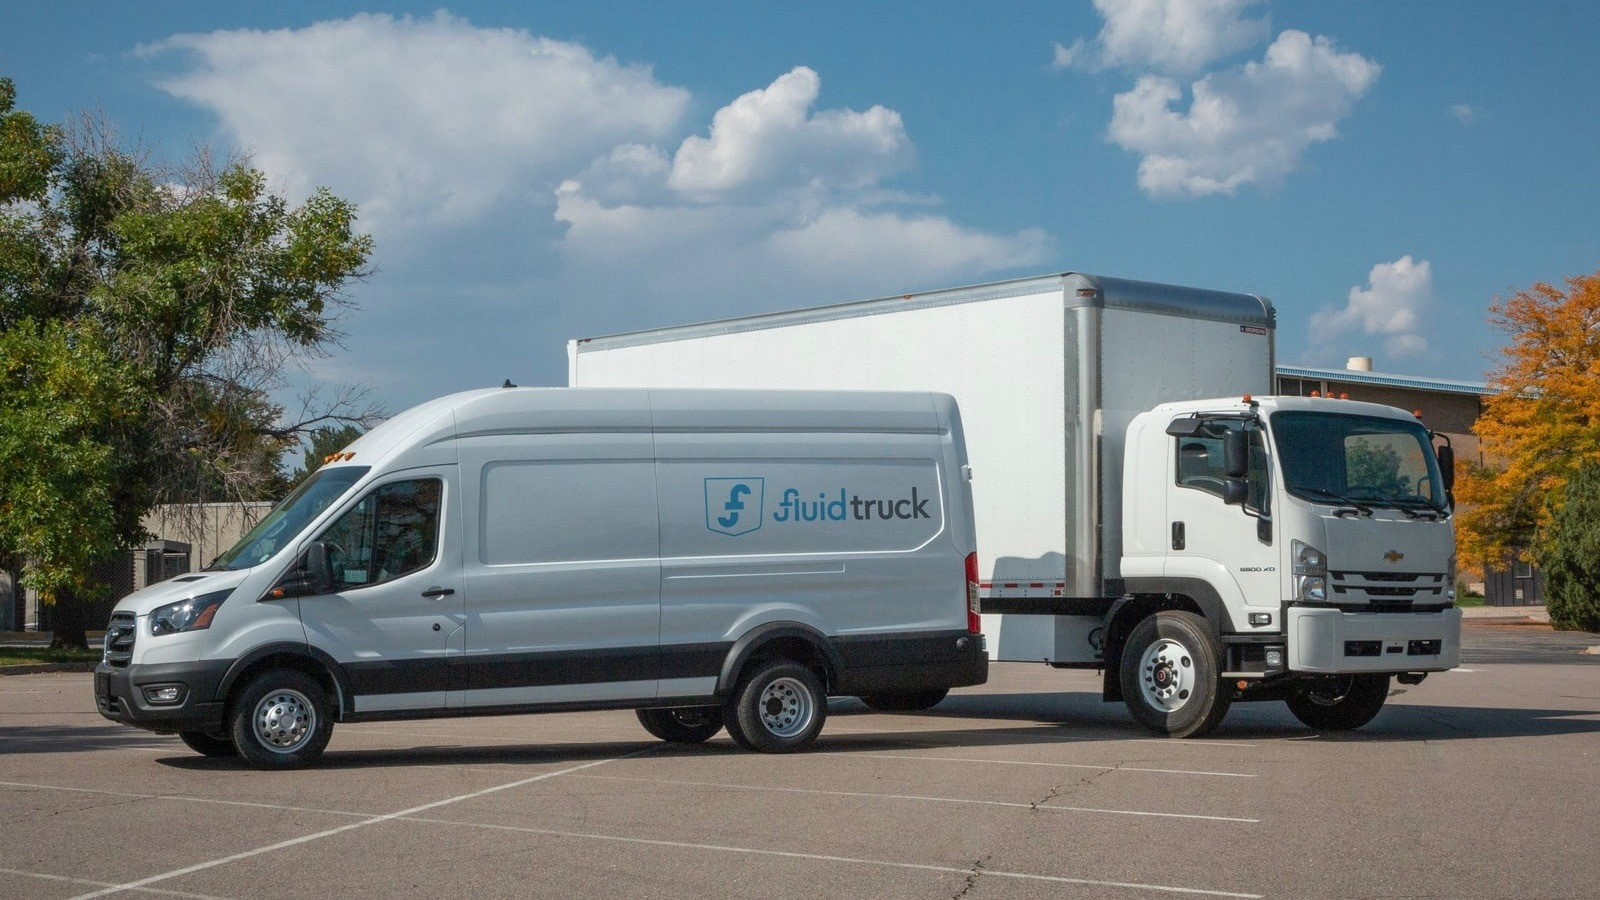 Fluid Truck electric vehicles available for rental